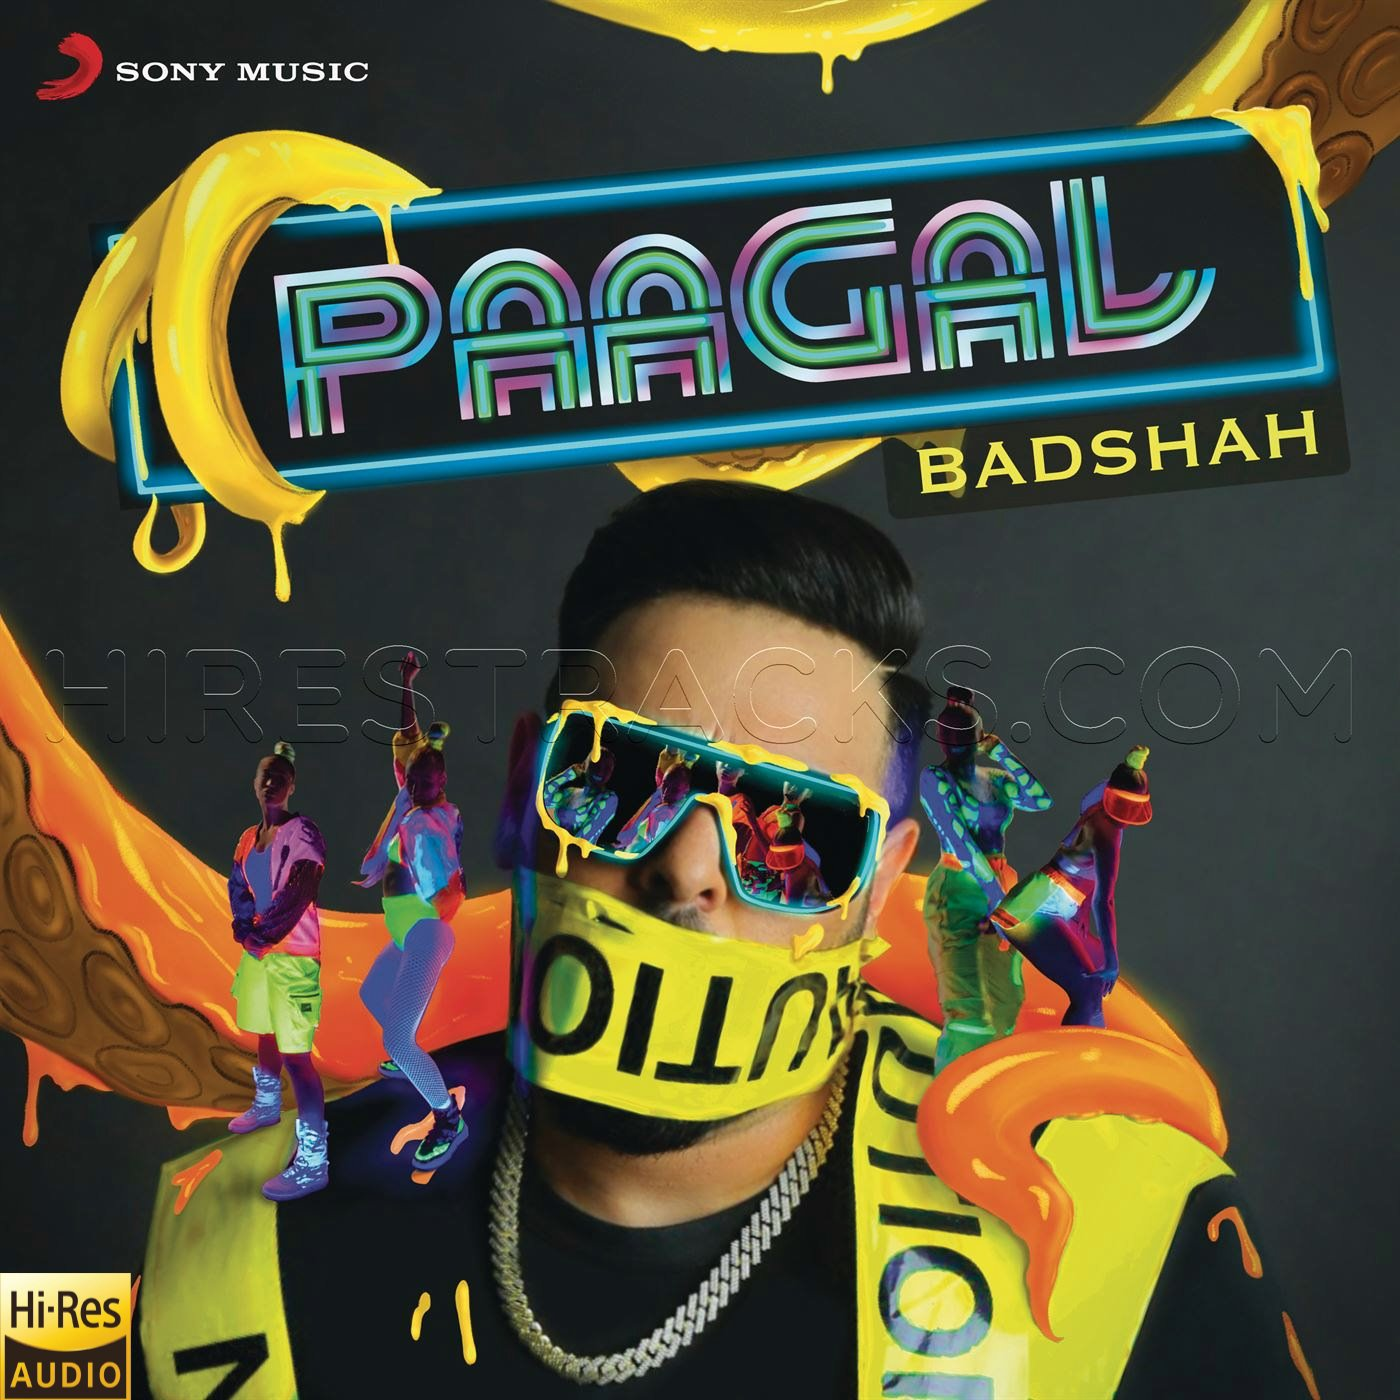 Paagal – Single (2019) (Badshah) (Sony Music) [24 BIT – 96 KHZ] [Digital-DL-FLAC]